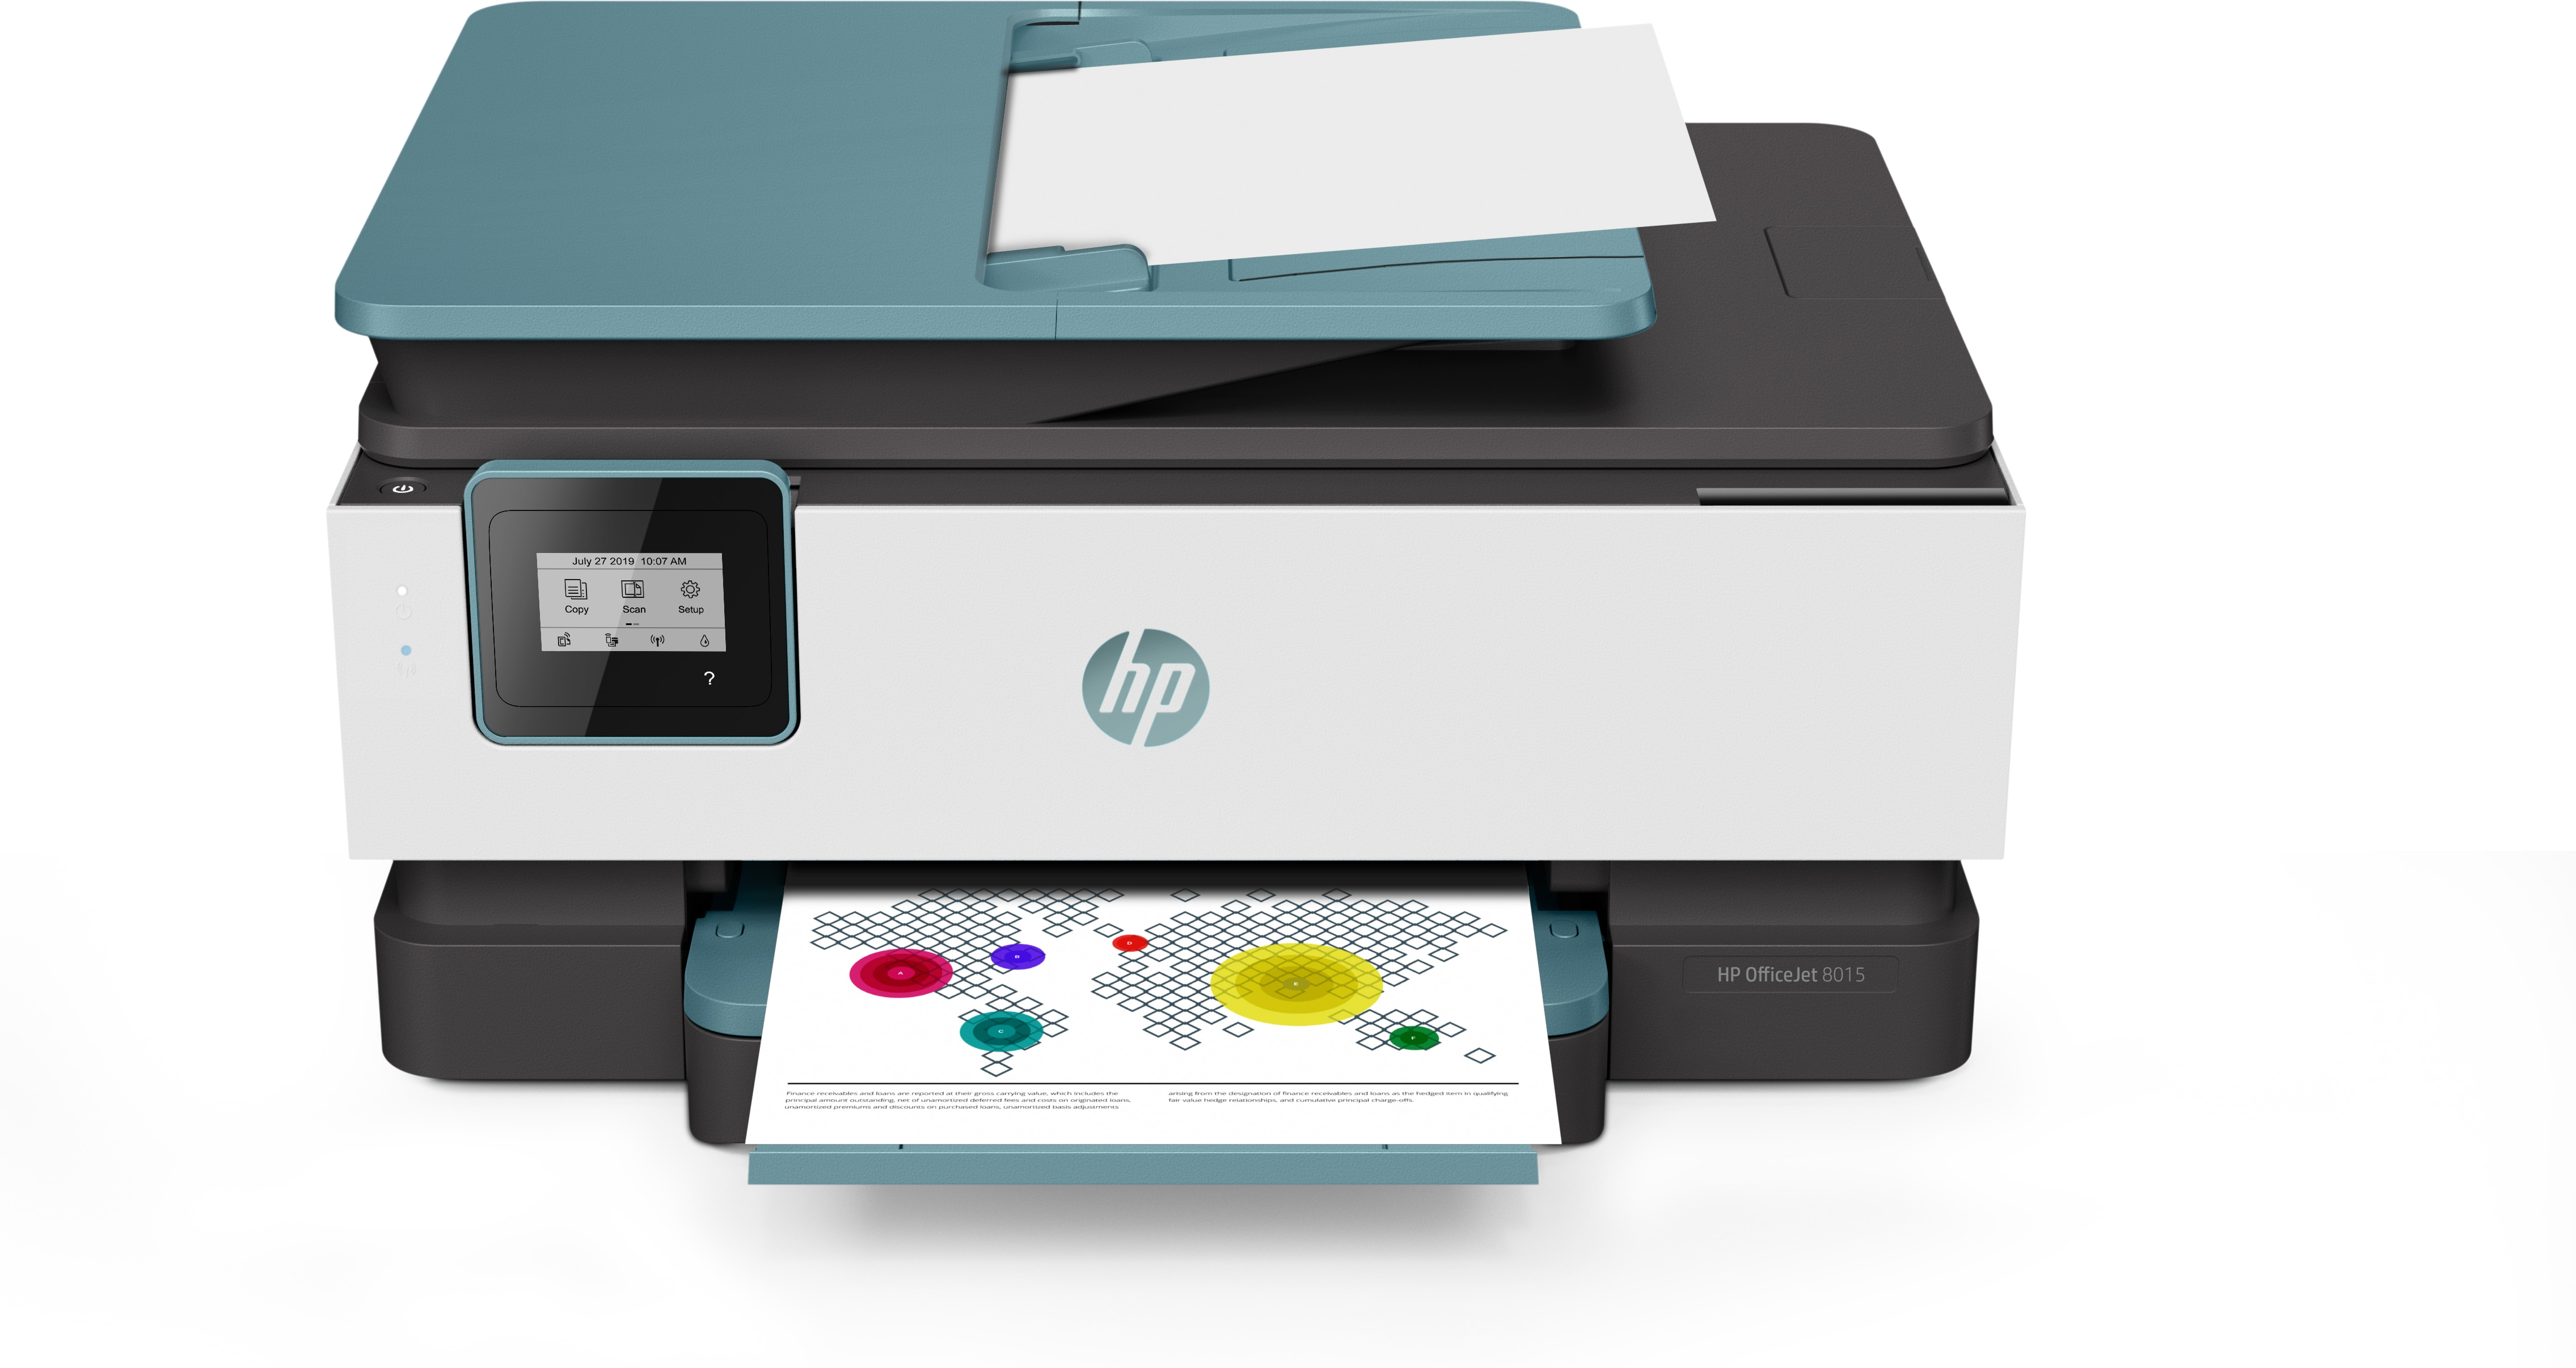 HP Officejet Pro 8015 All-in-One